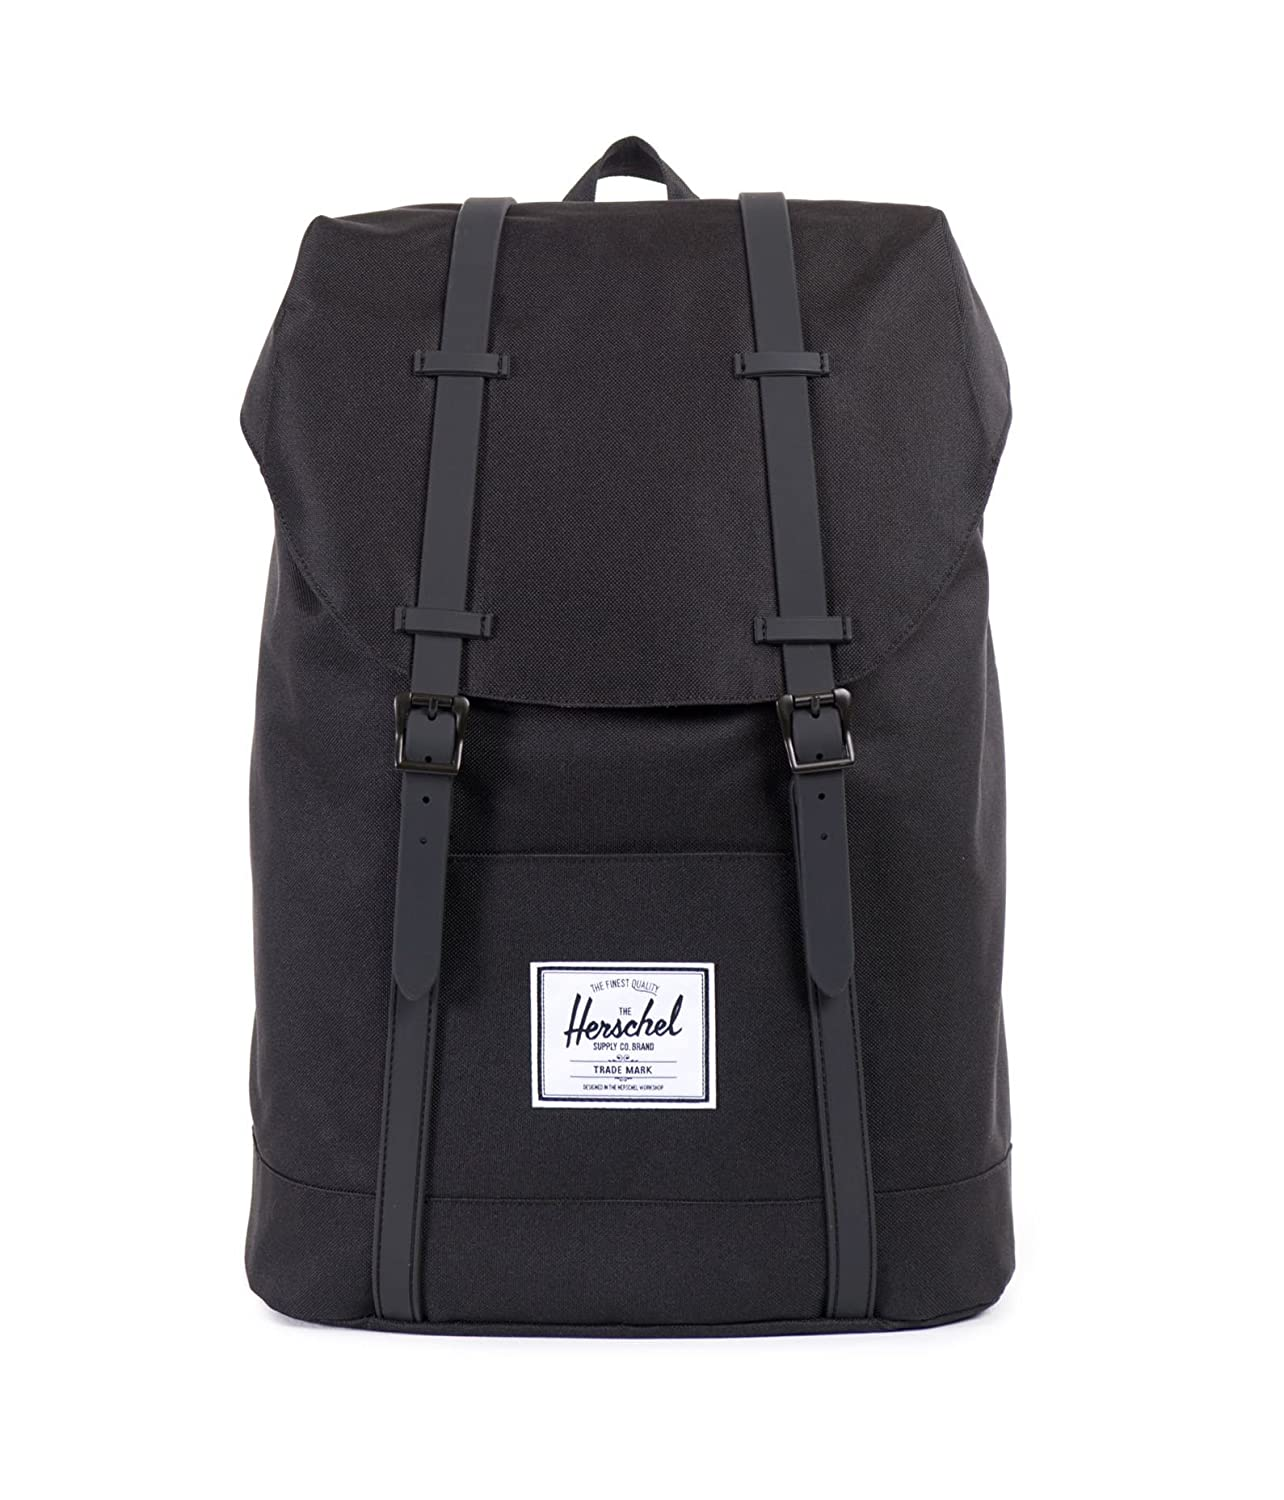 Amazon.co.jp: [ハーシェルサプライ] Herschel Supply 公式 Retreat 10066-00535-OS Black/Black PU (Black/Black PU): シューズ&バッグ:通販